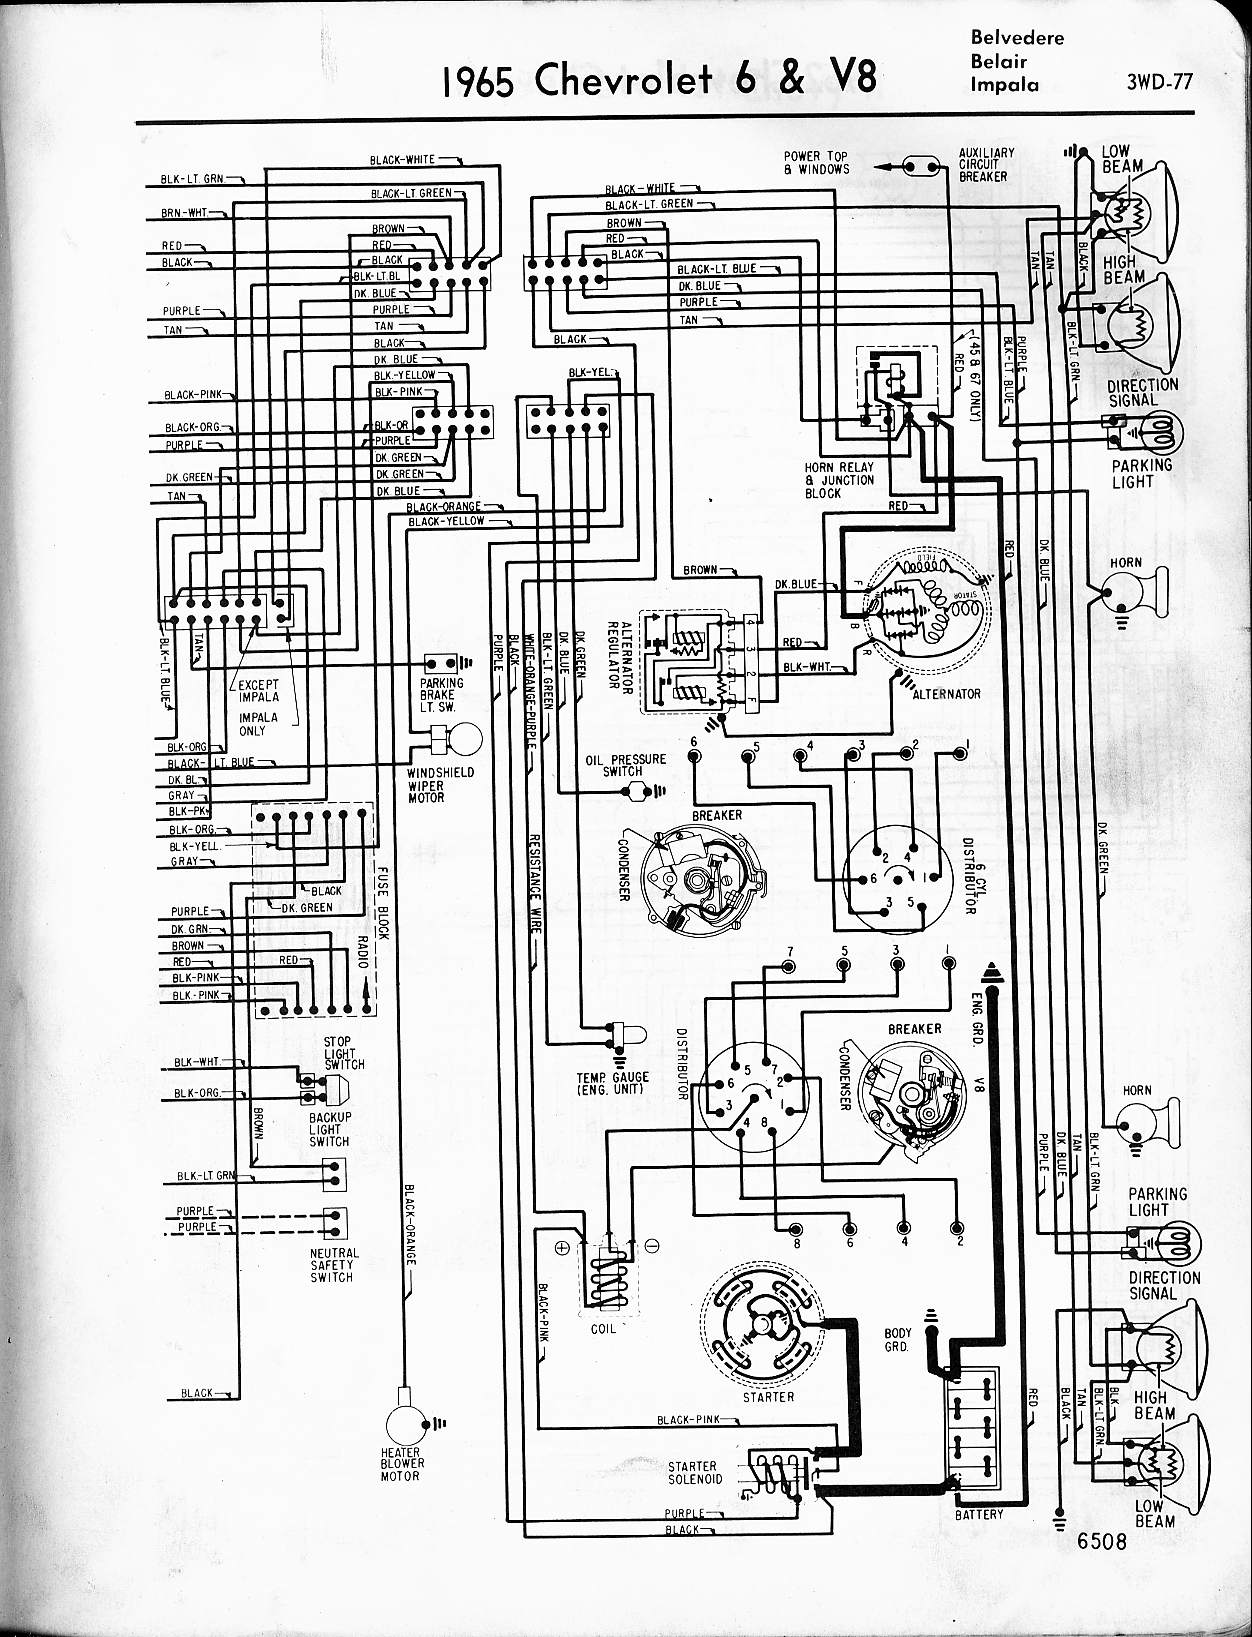 MWireChev65_3WD 077 57 65 chevy wiring diagrams 66 Plymouth at bayanpartner.co